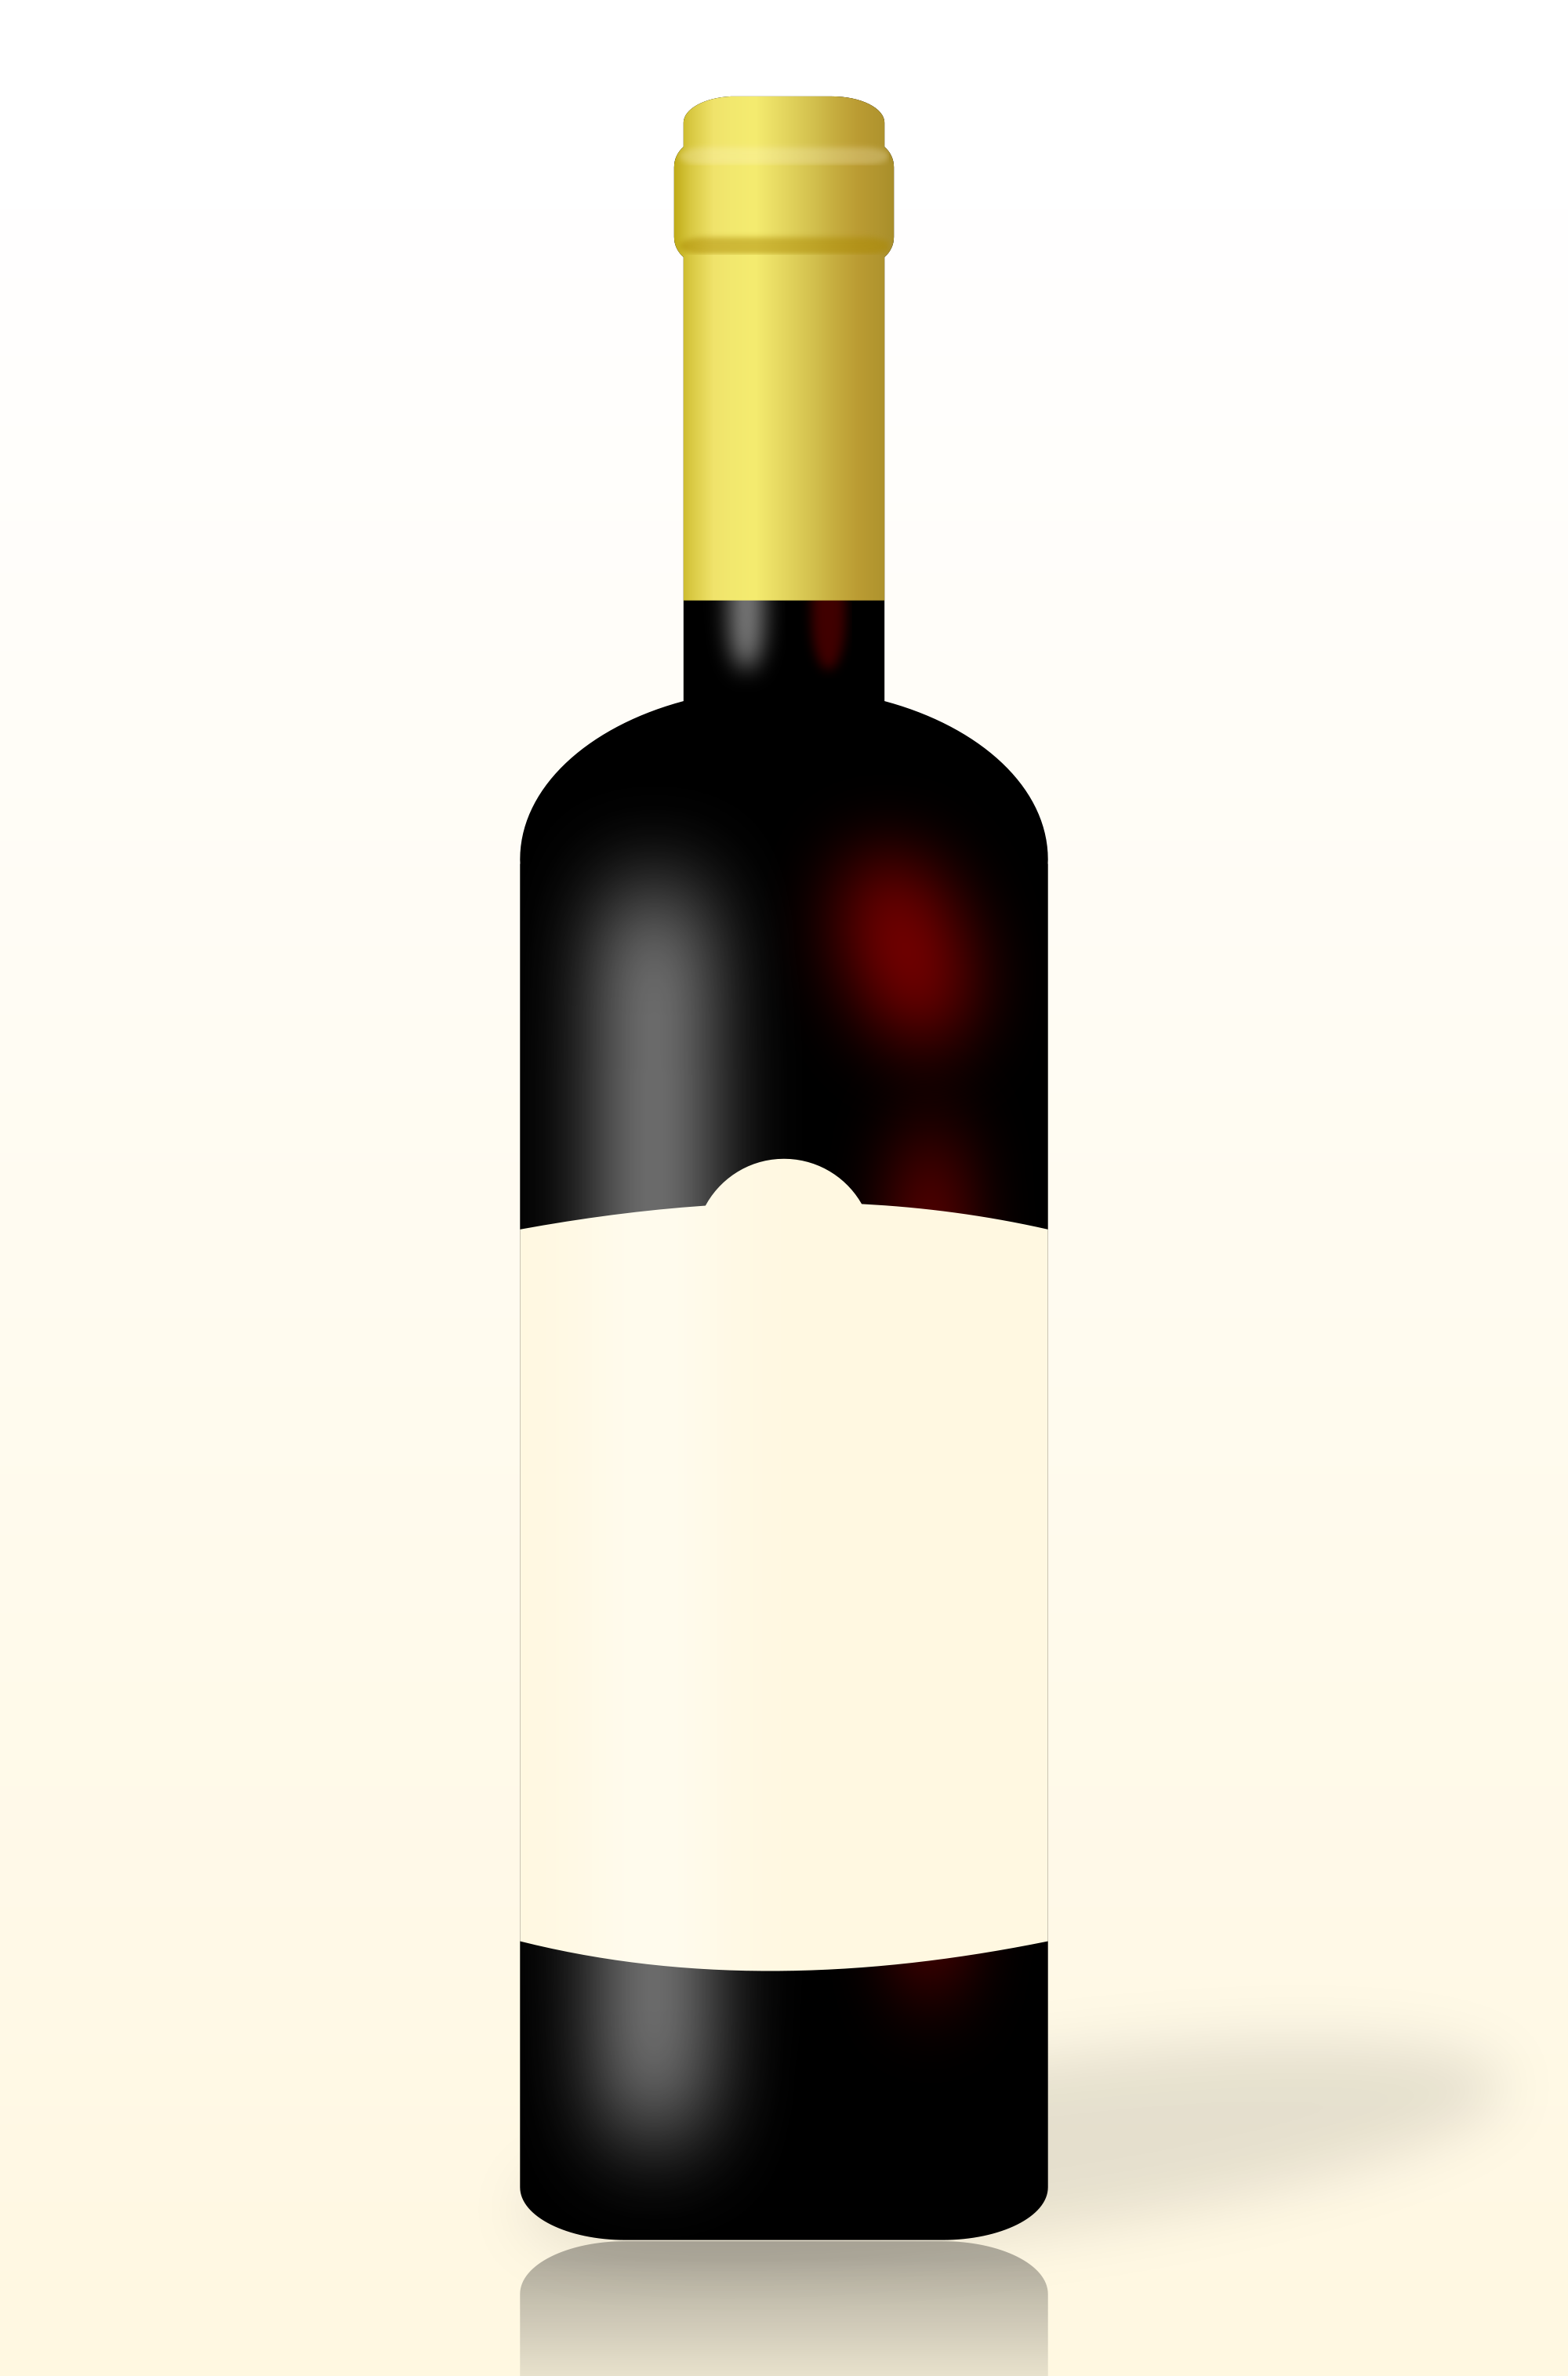 Bottle svg #12, Download drawings